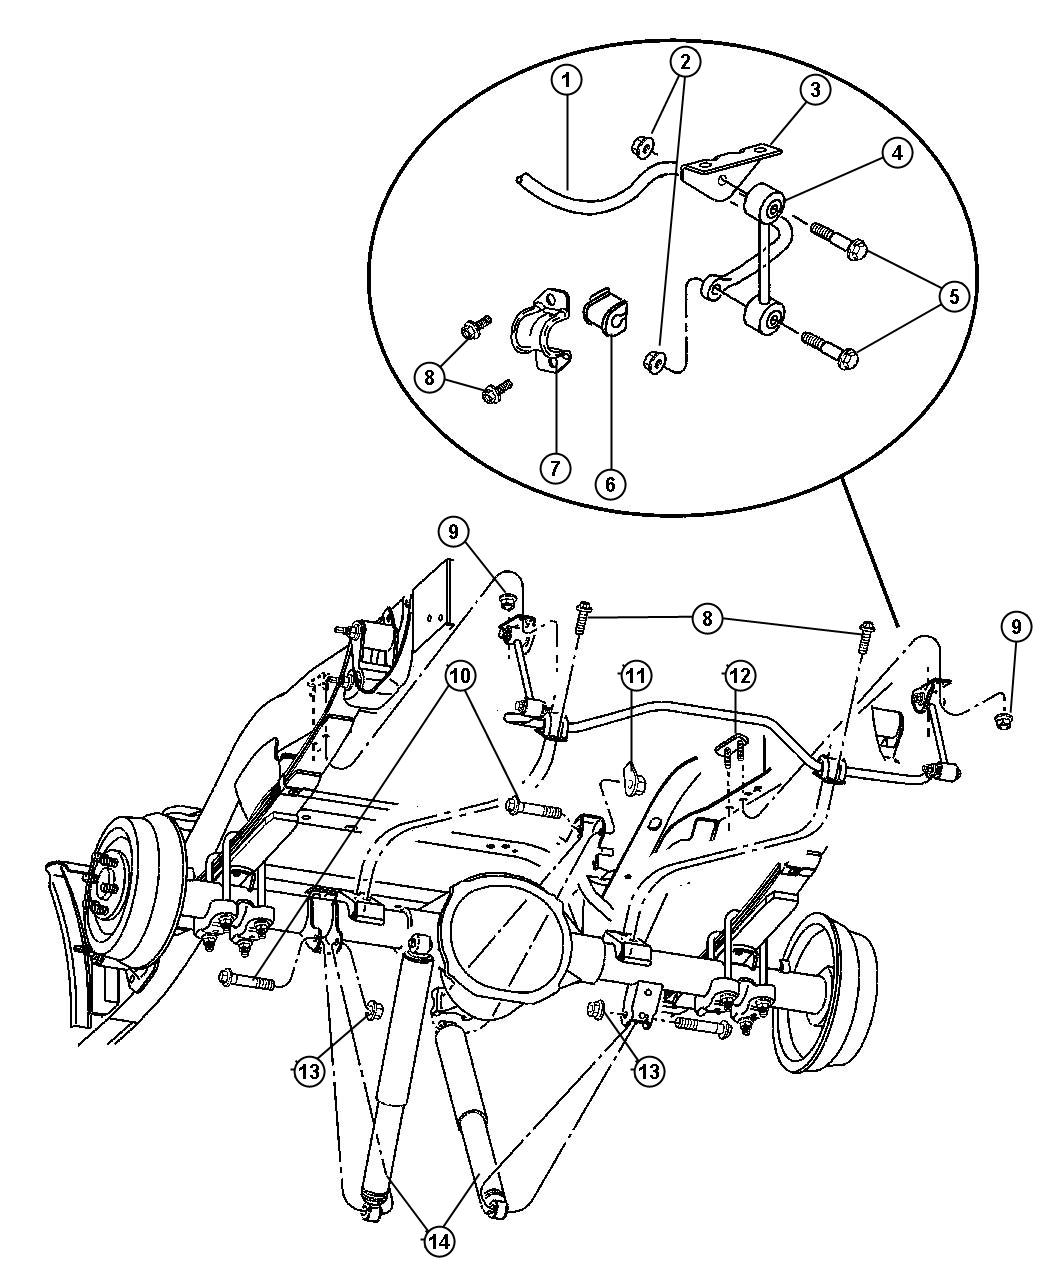 2000 dodge dakota parts diagram dodge 5bkas